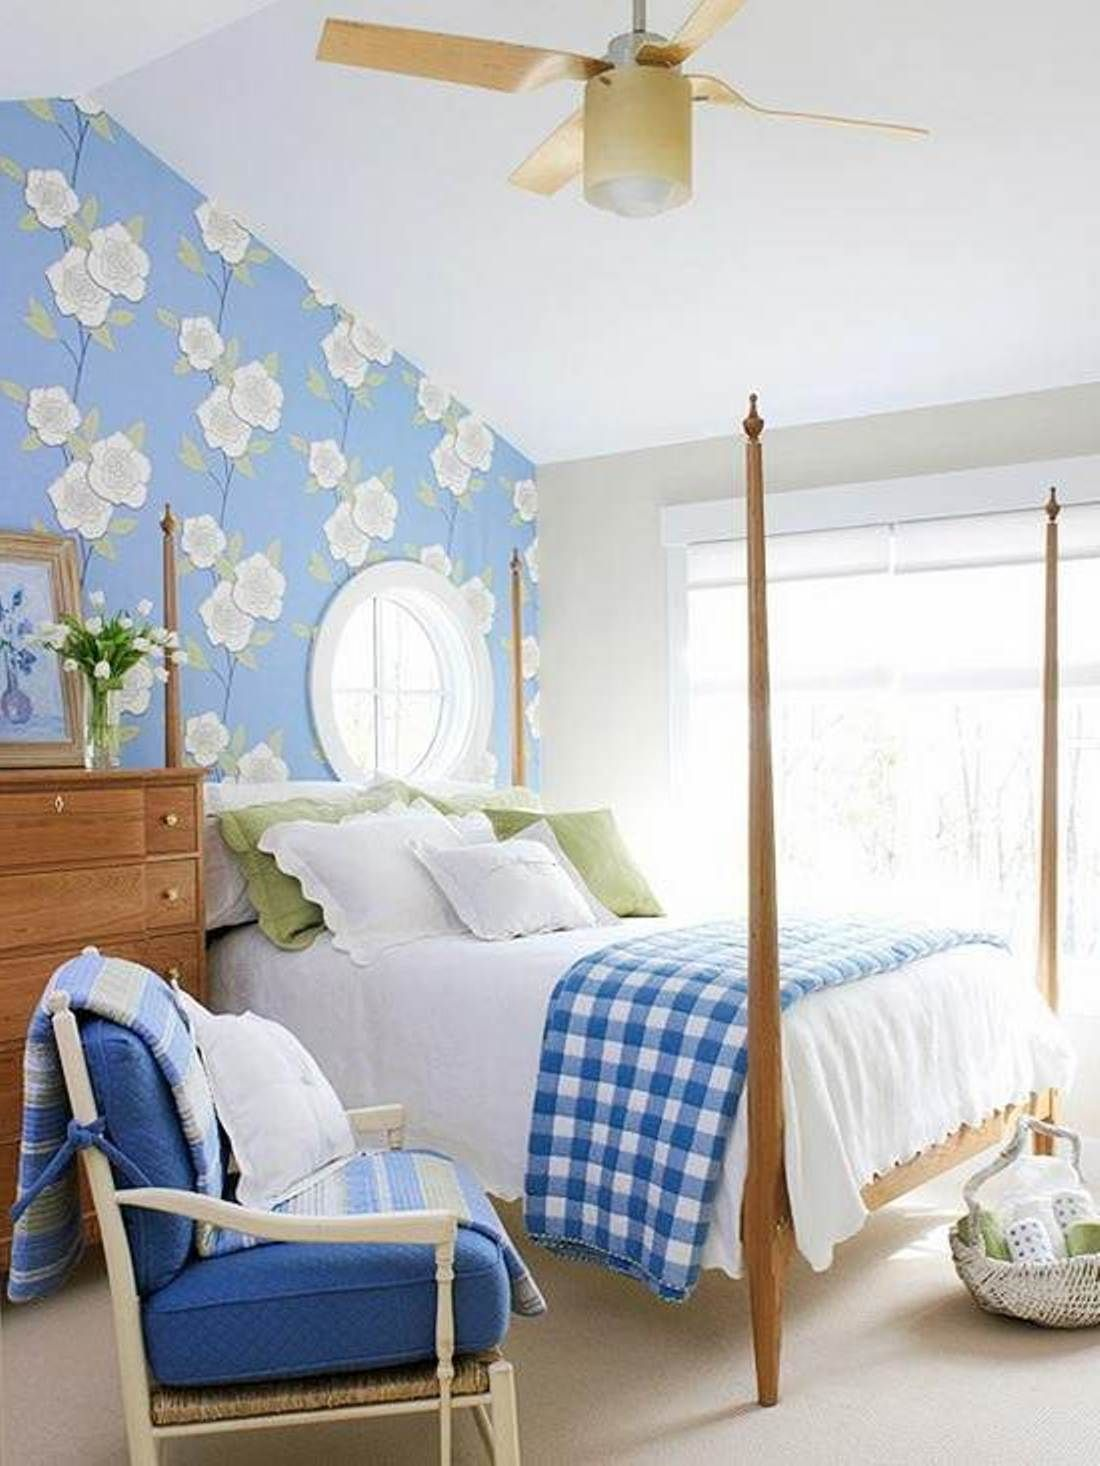 Decorating Master Bedroom Ideas On a Budget | Better Home ...